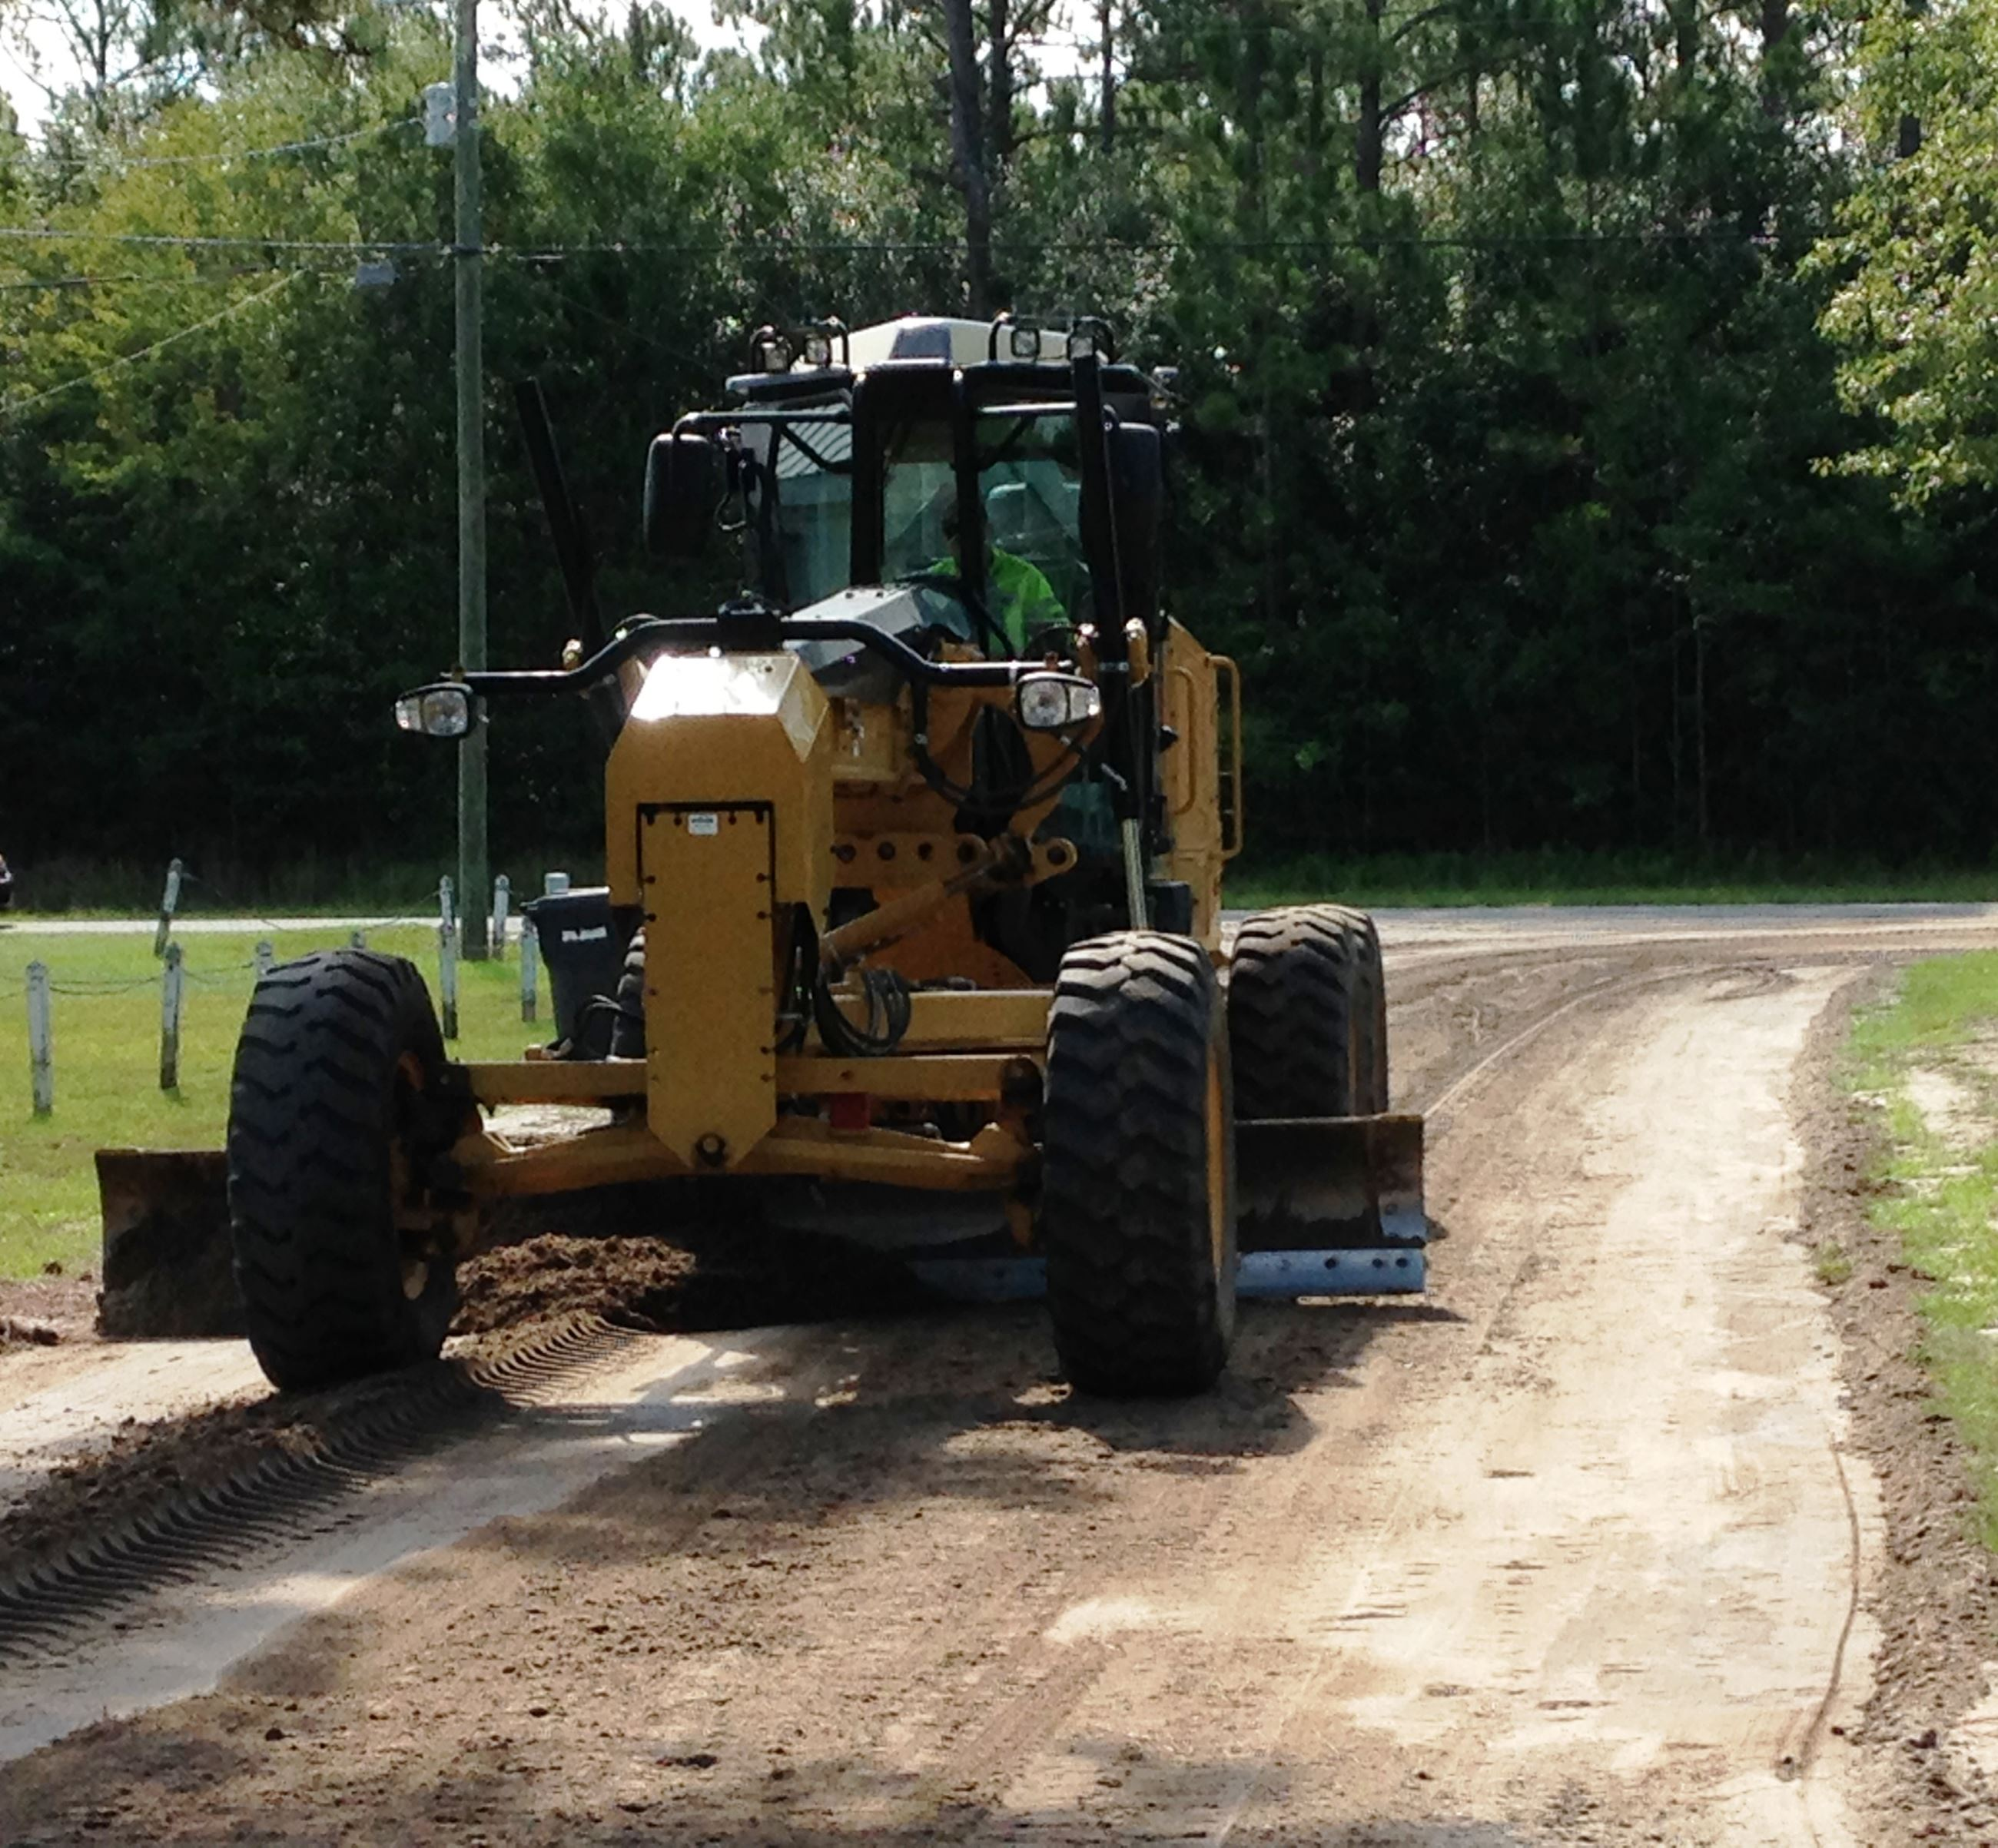 Grader Vehicle Working on Road